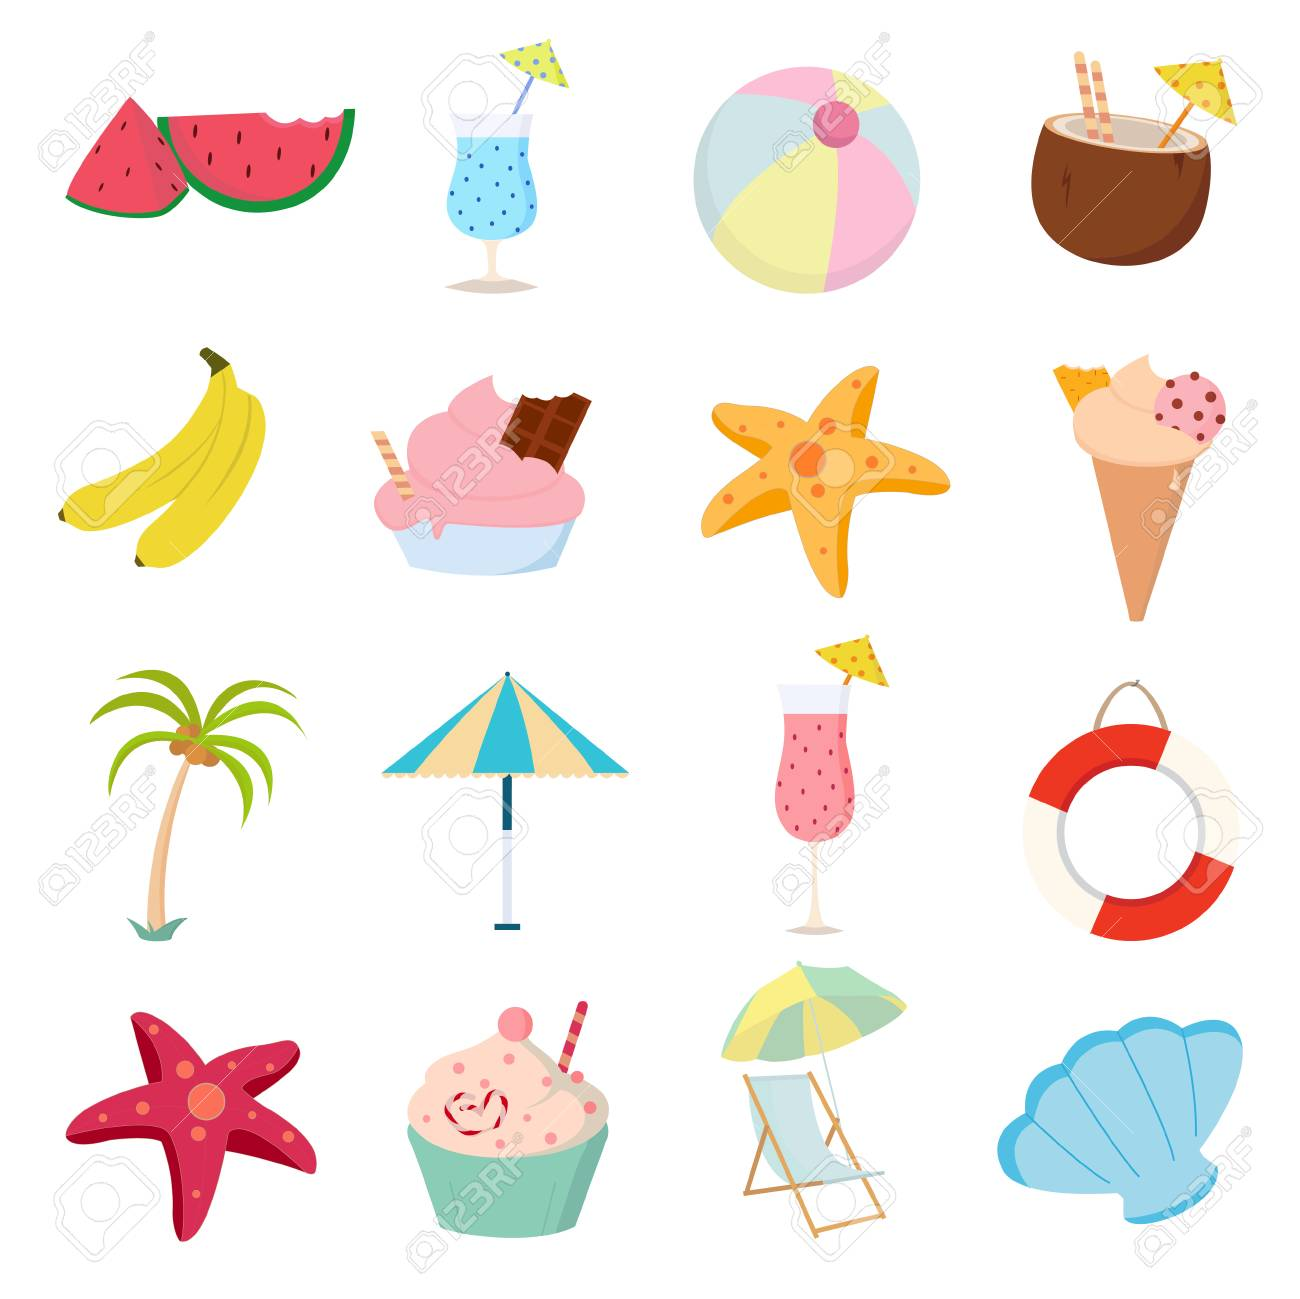 Summer icons set on white background for graphic and web design,